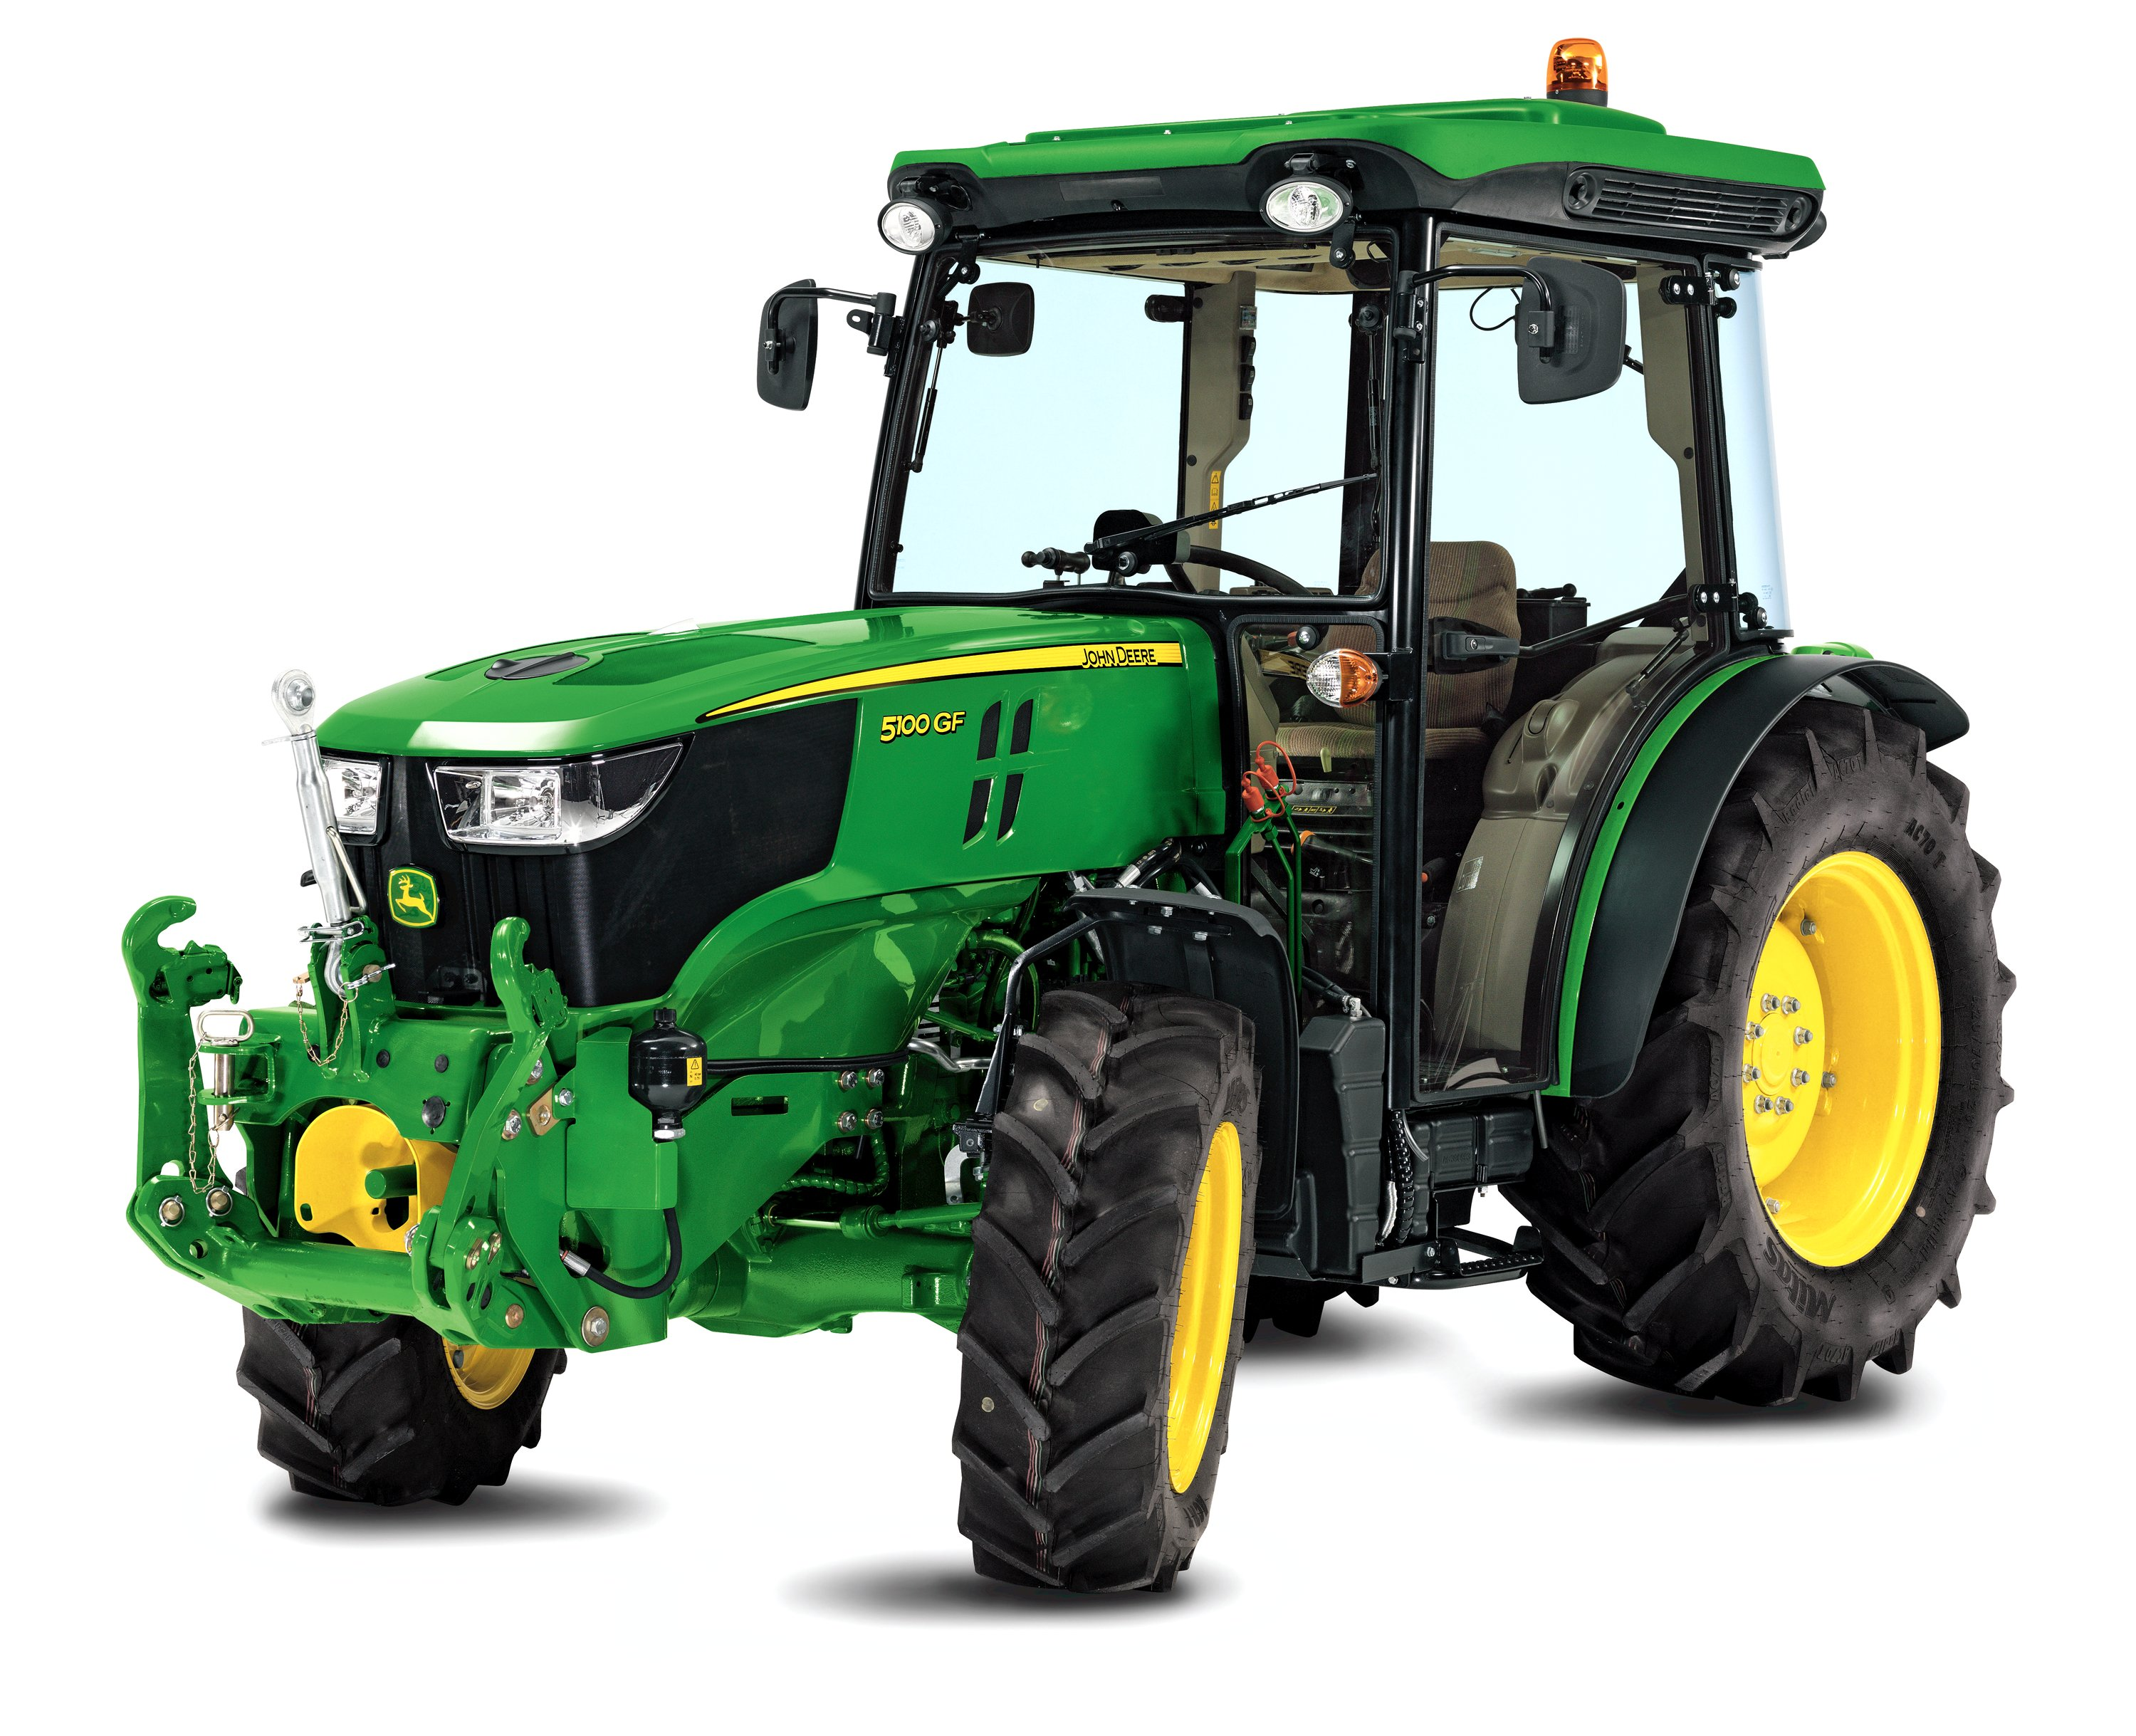 New John Deere 5G Series tractors for 2015 | Pitchcare